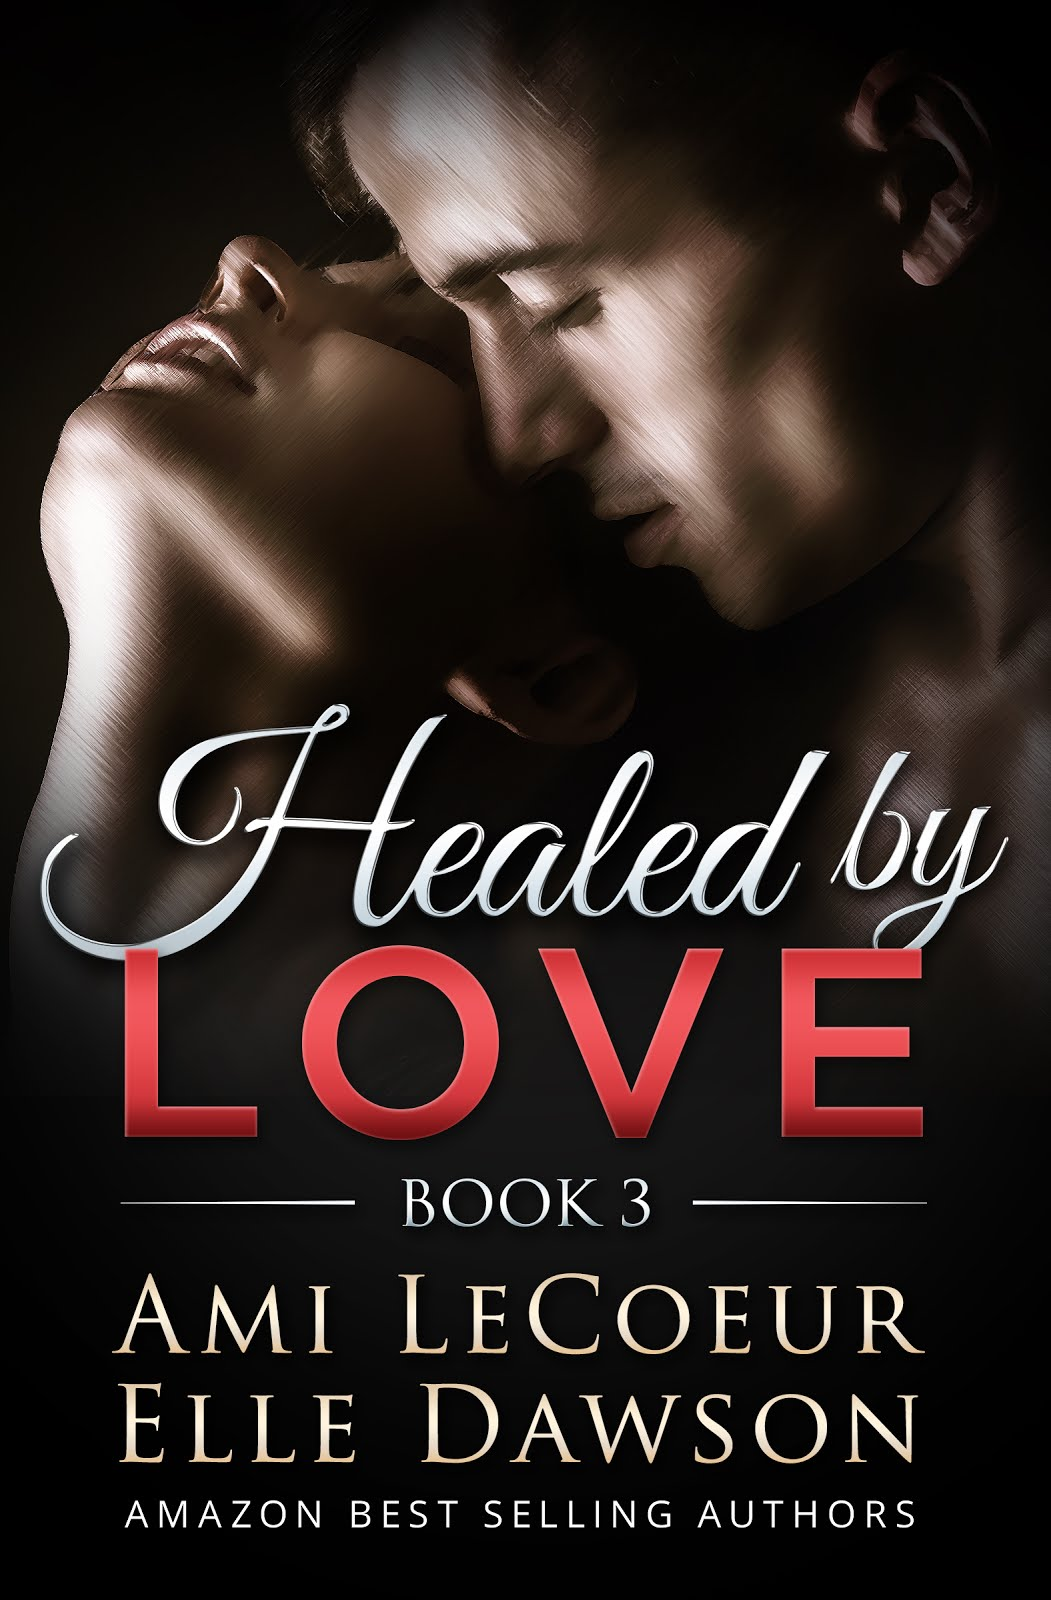 Healed by LOVE - Book 3